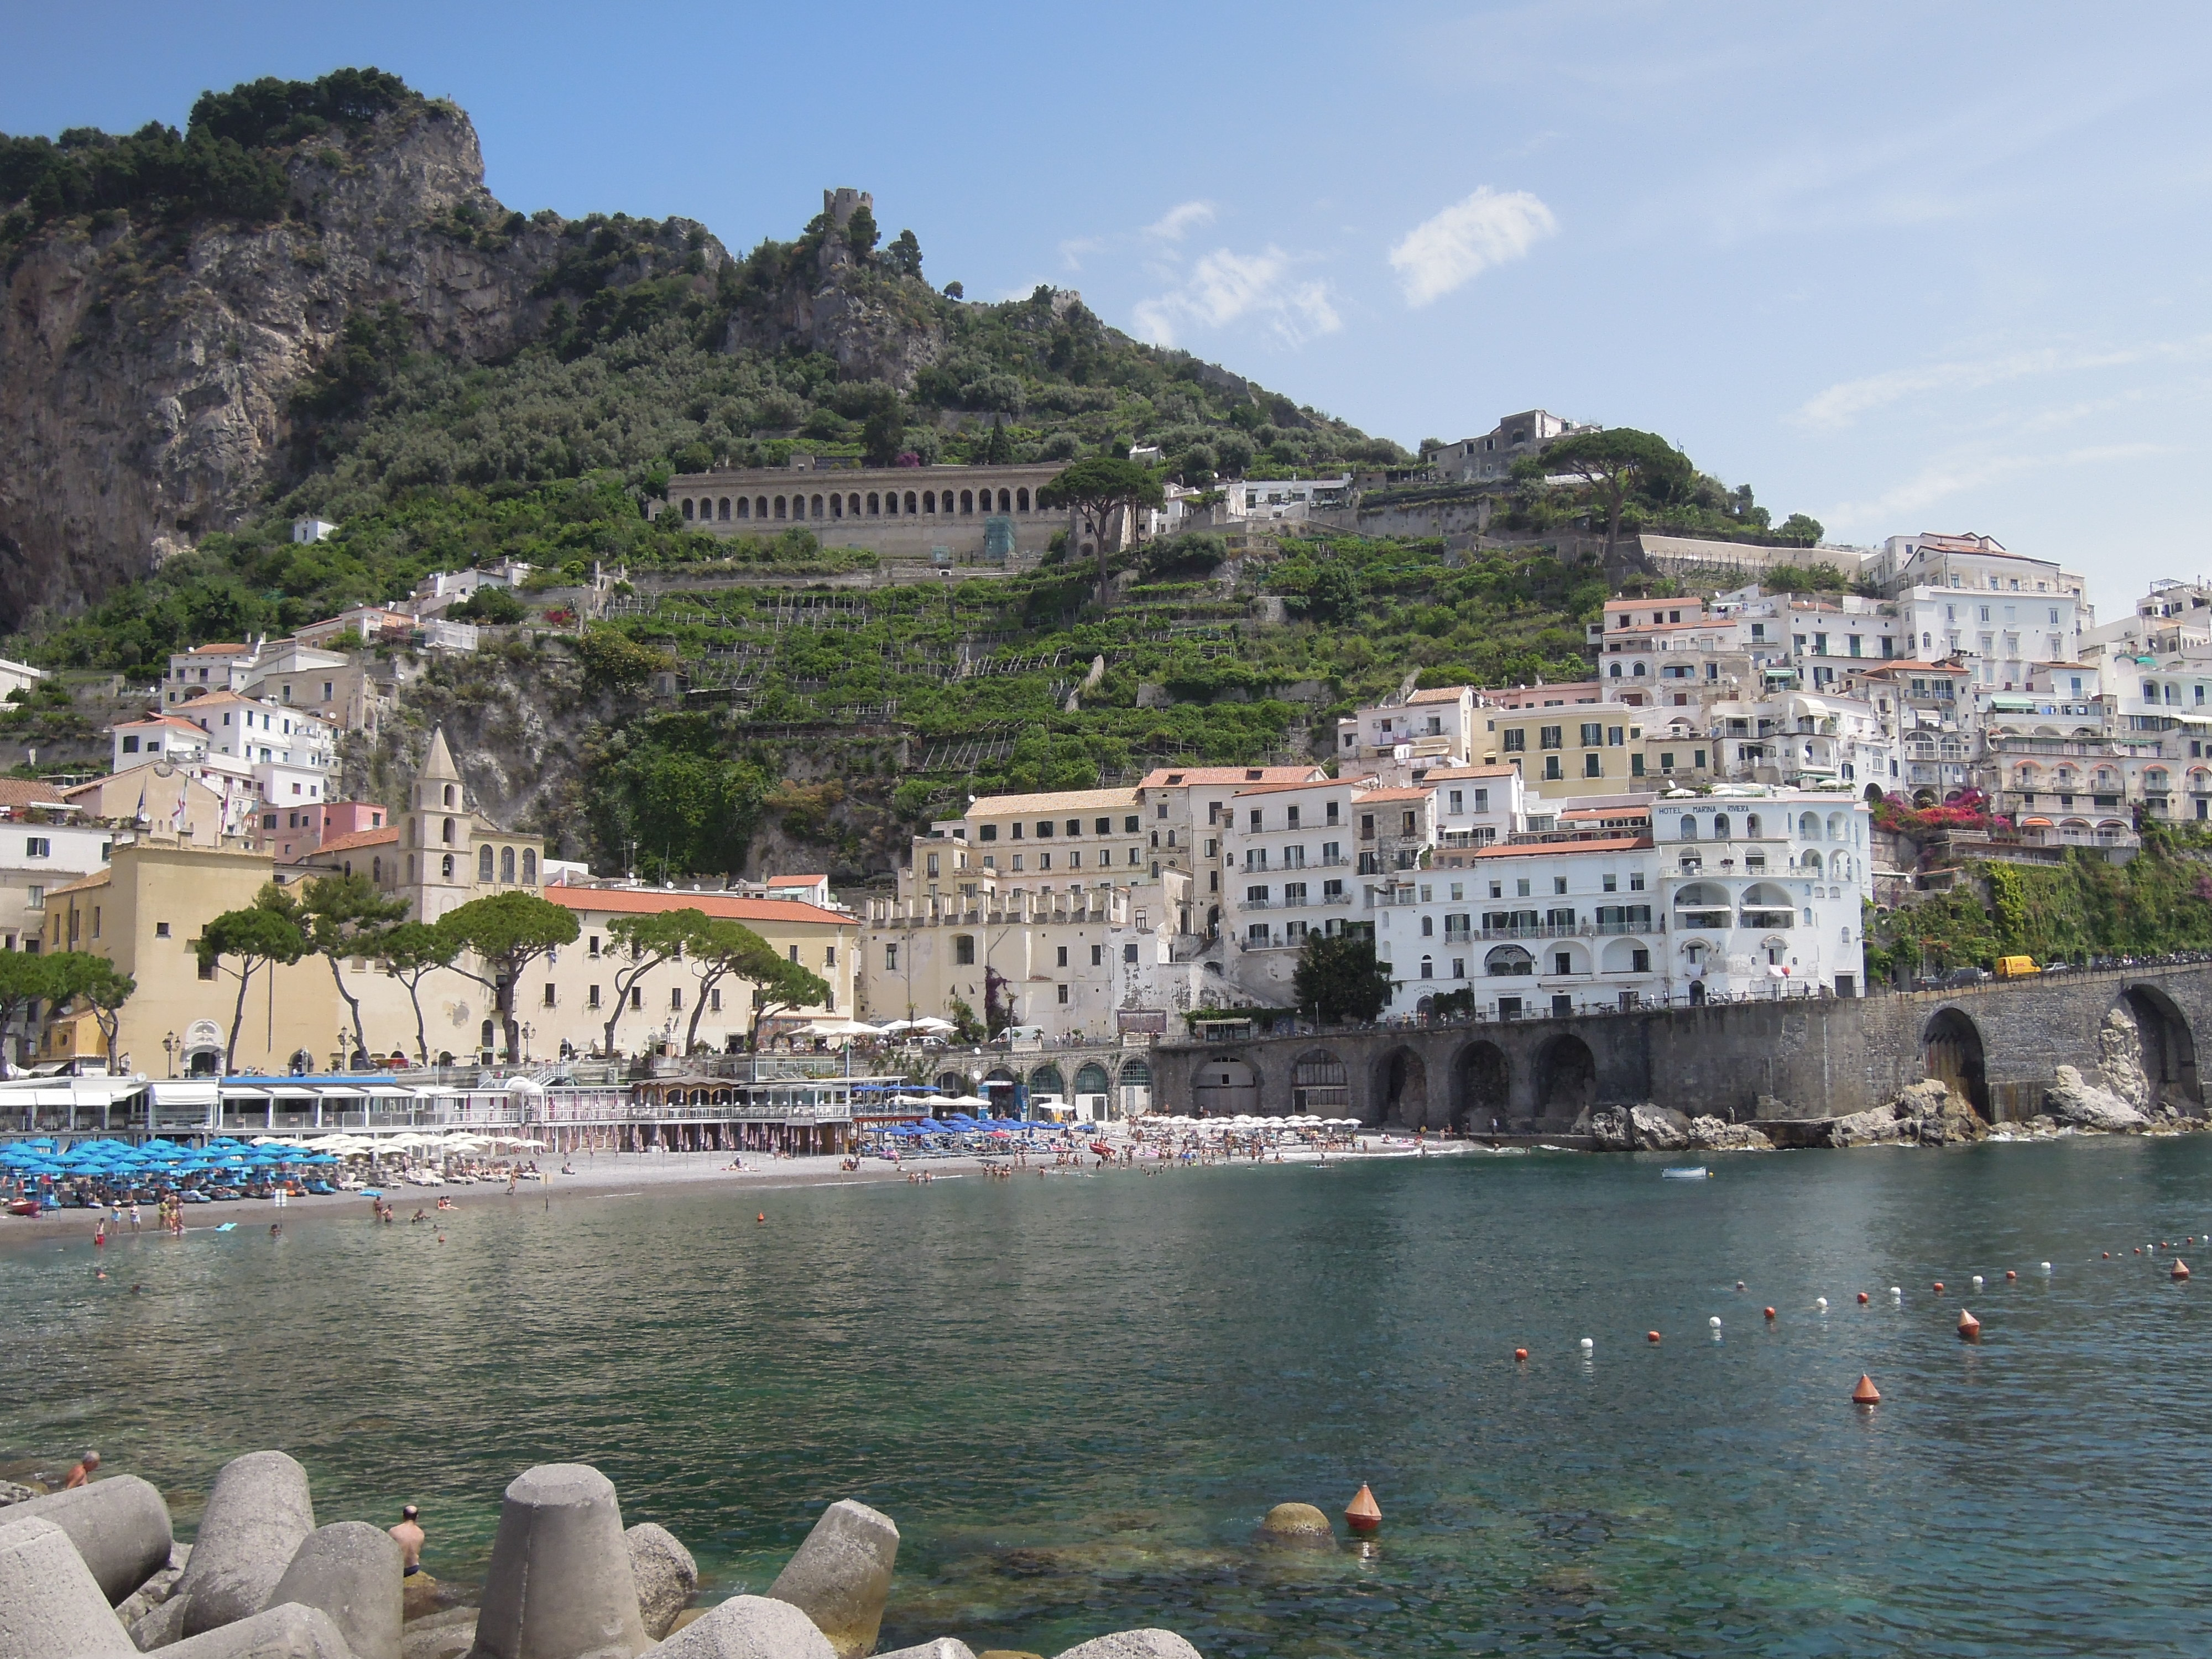 Amalfi Coast, Italy June 2019